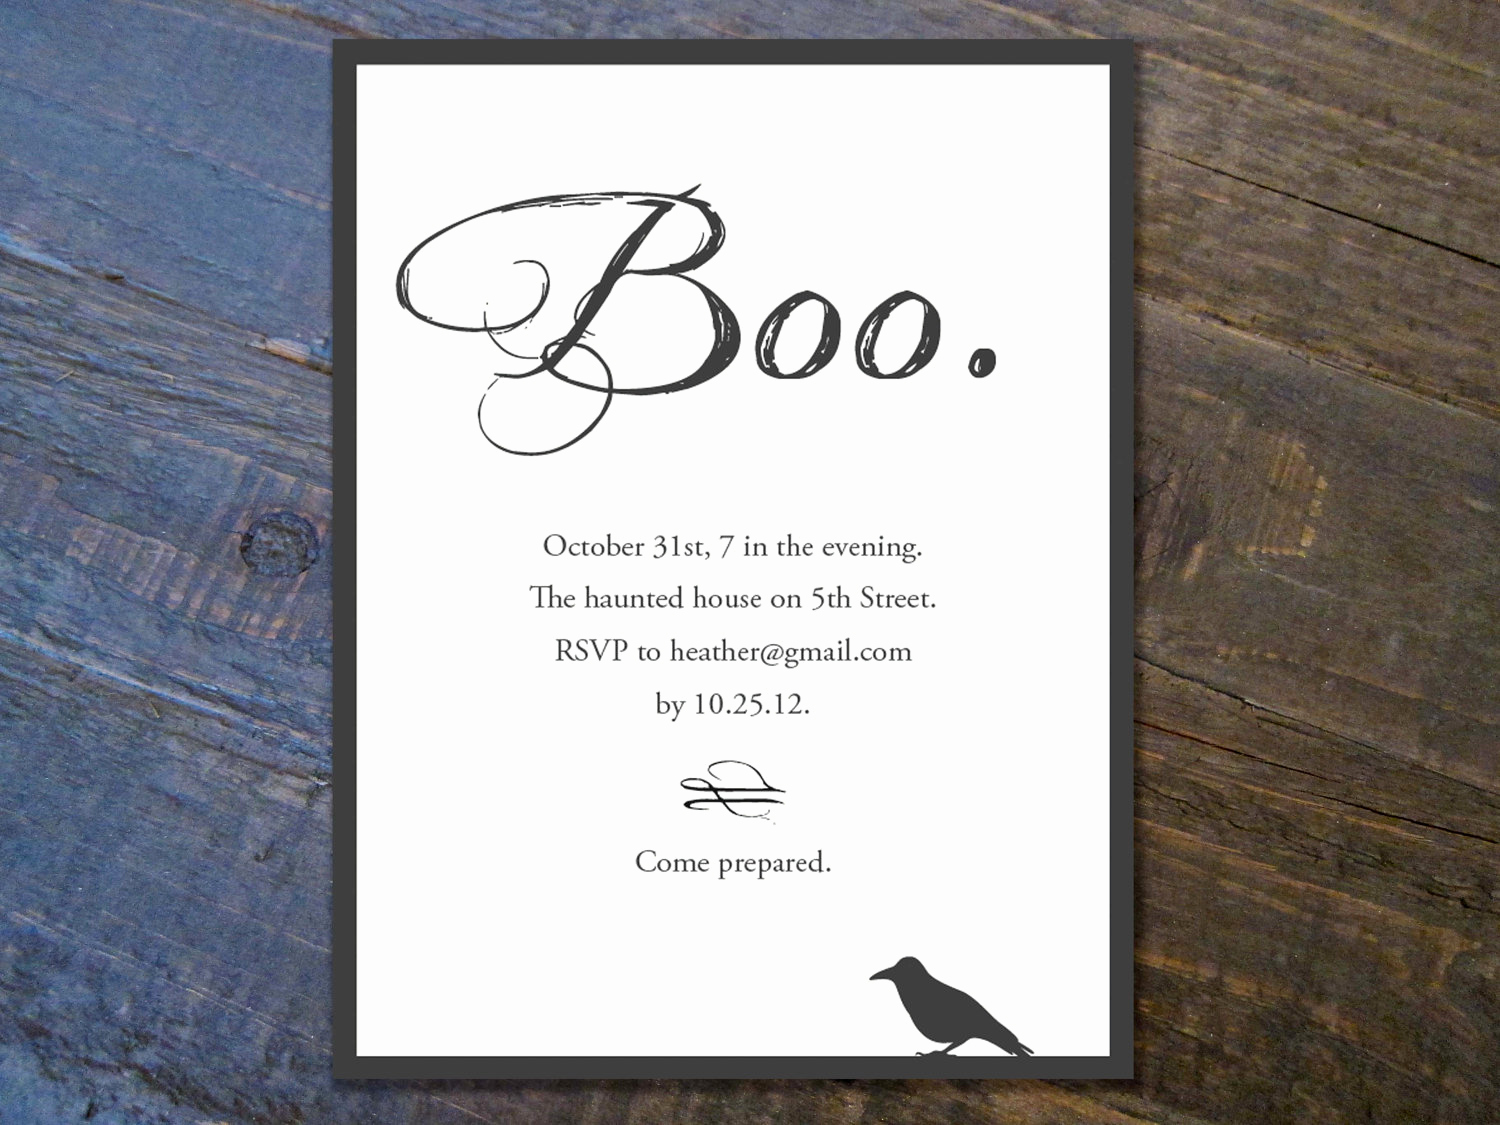 Free Invitation Template Printable Luxury Free Halloween Invitation Templates Printable – Festival